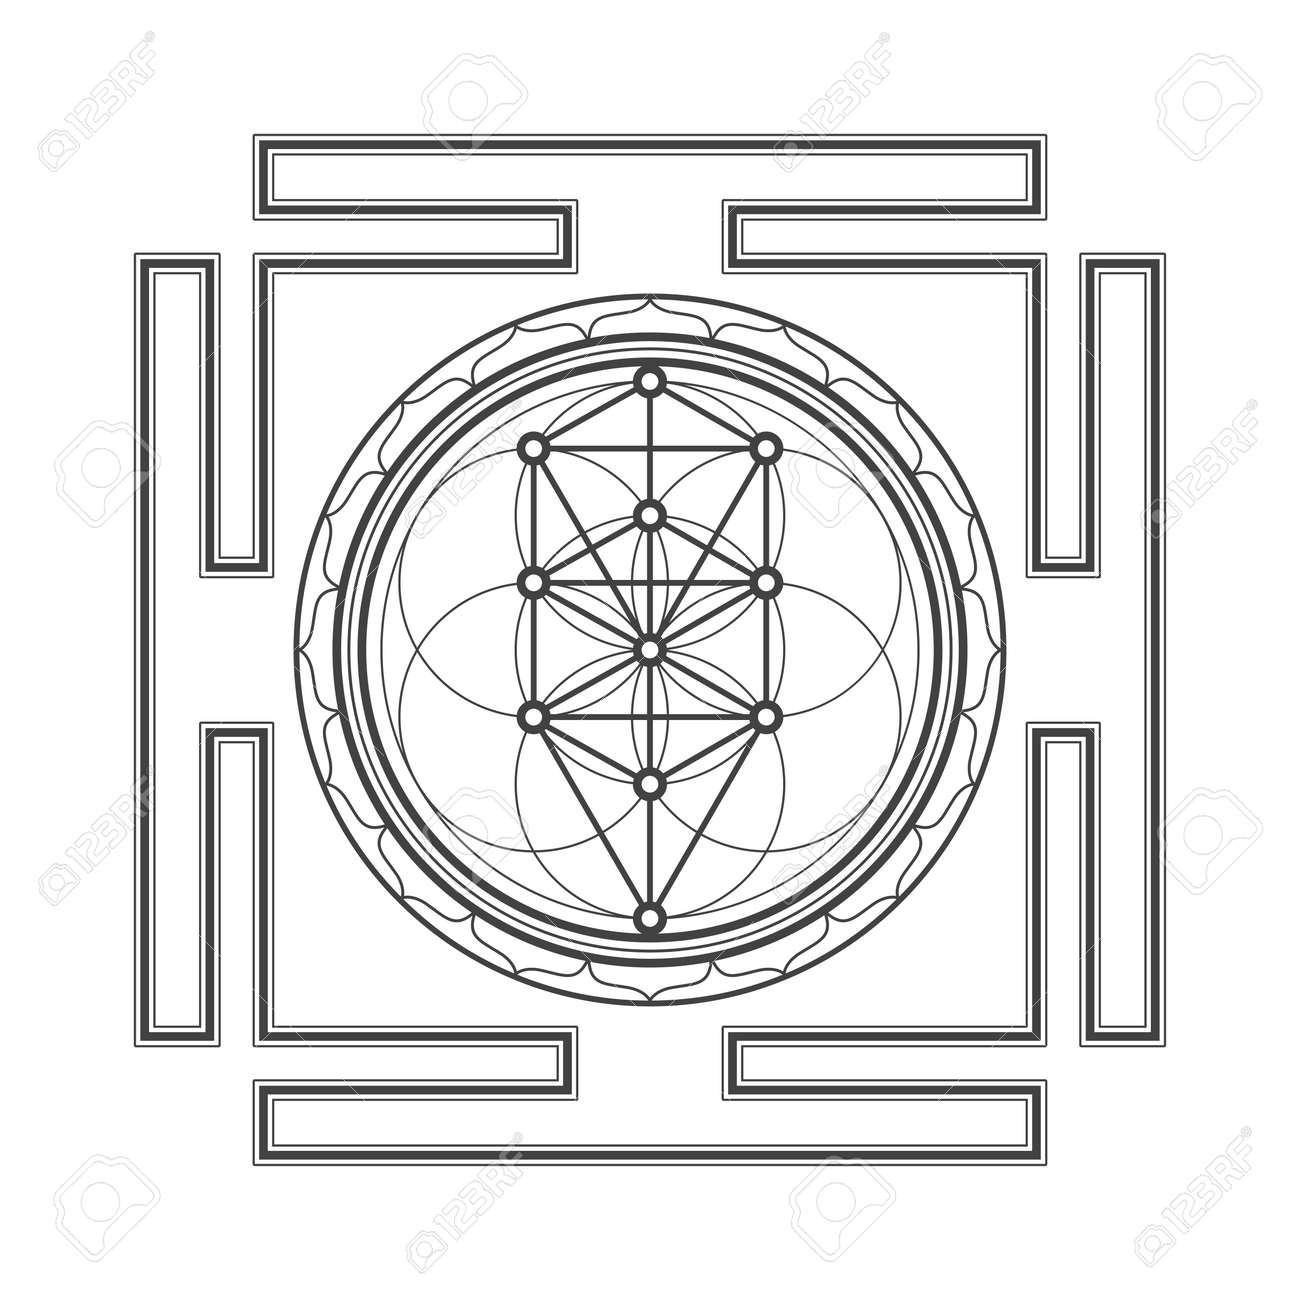 hight resolution of vector vector black outline tree of life yantra illustration sacred diagram isolated on white background